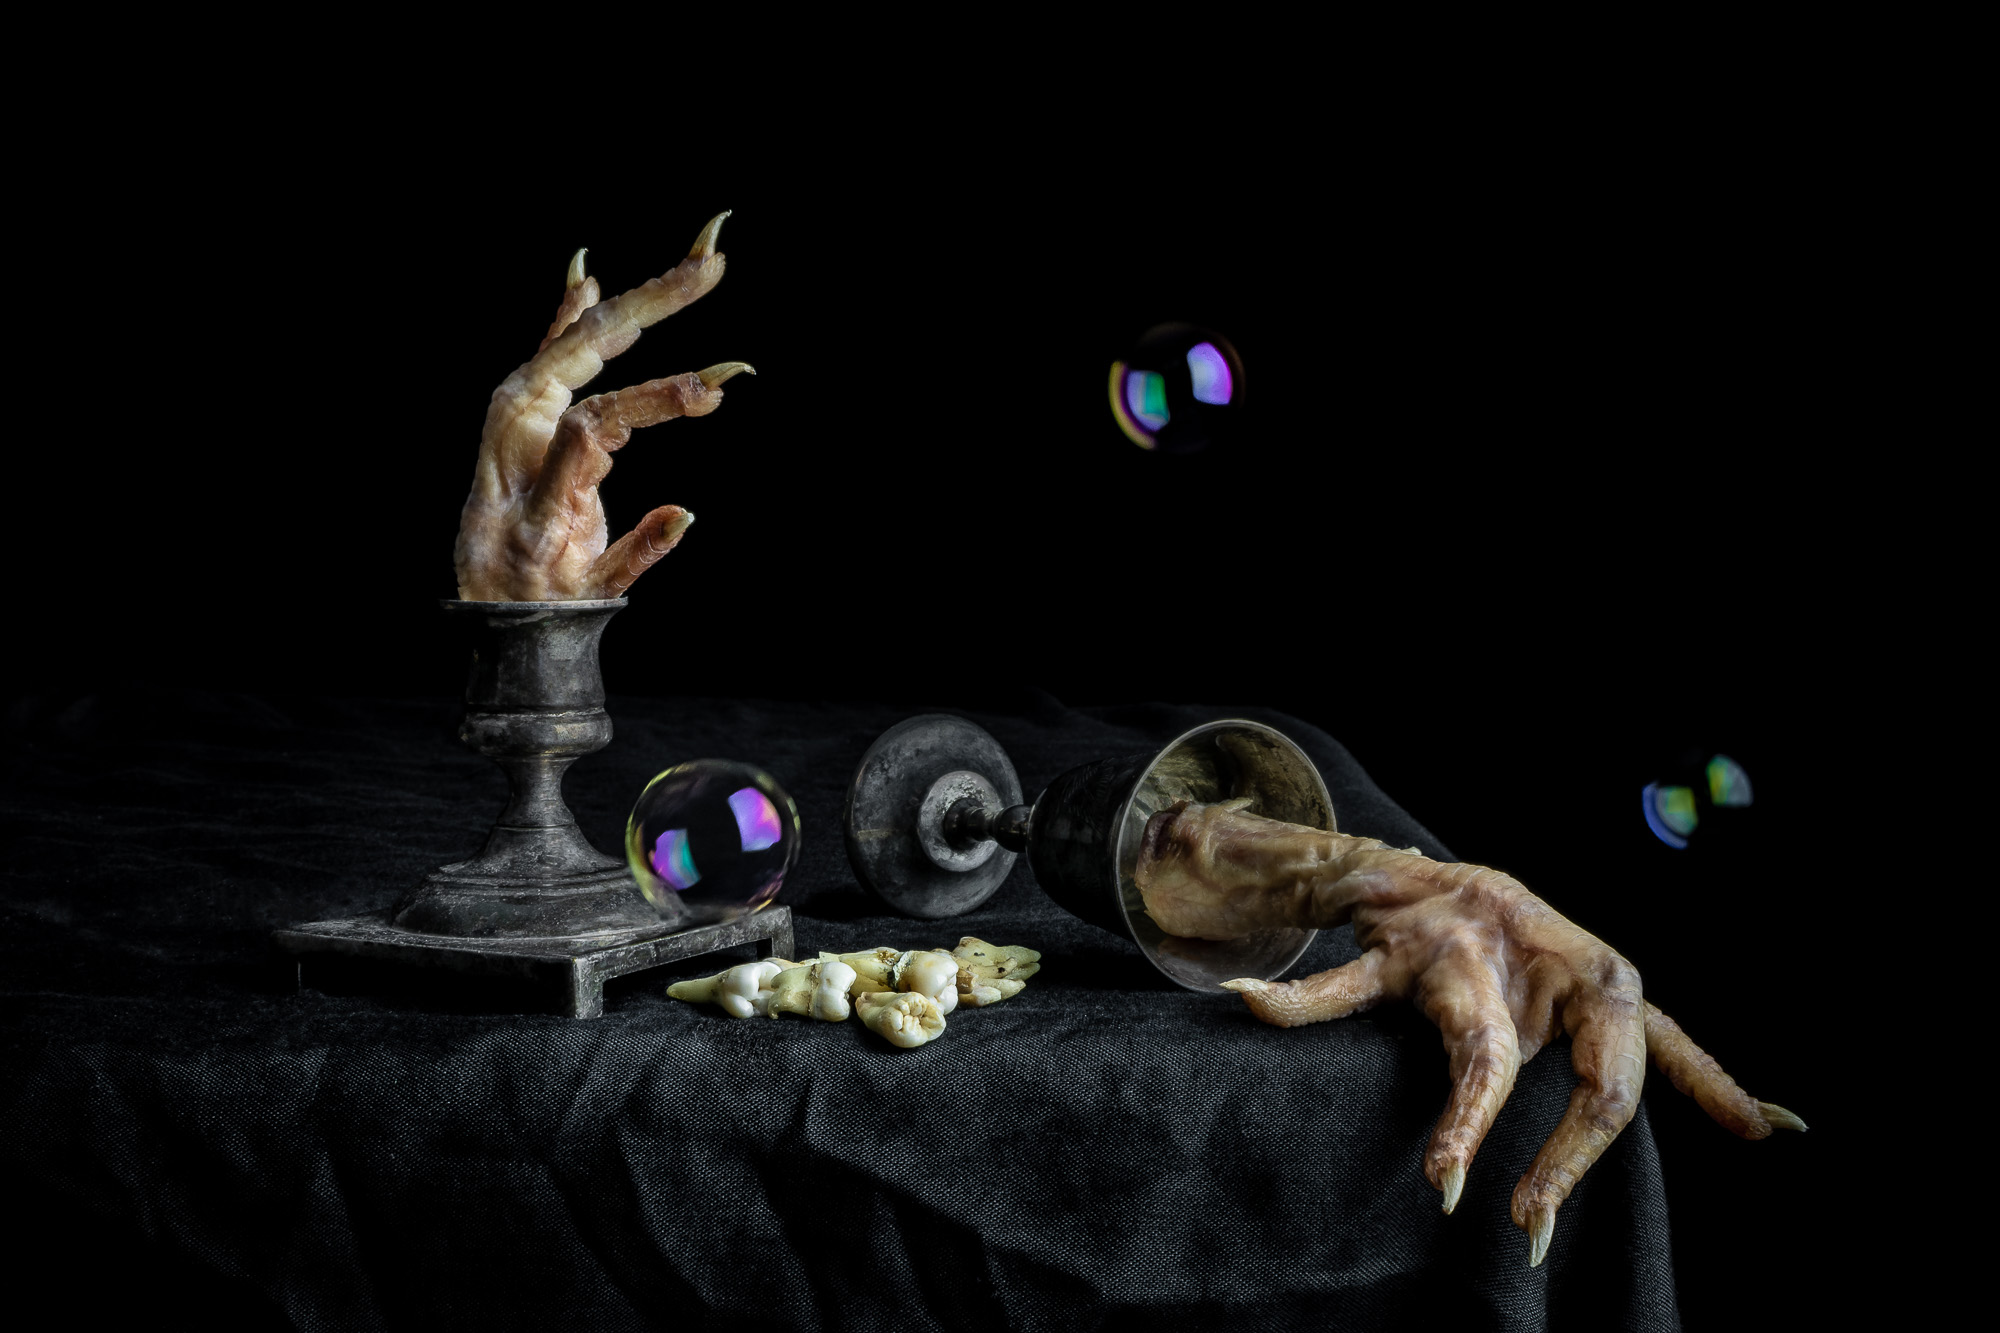 neal-auch-still-life-with-bubbles-2.jpg